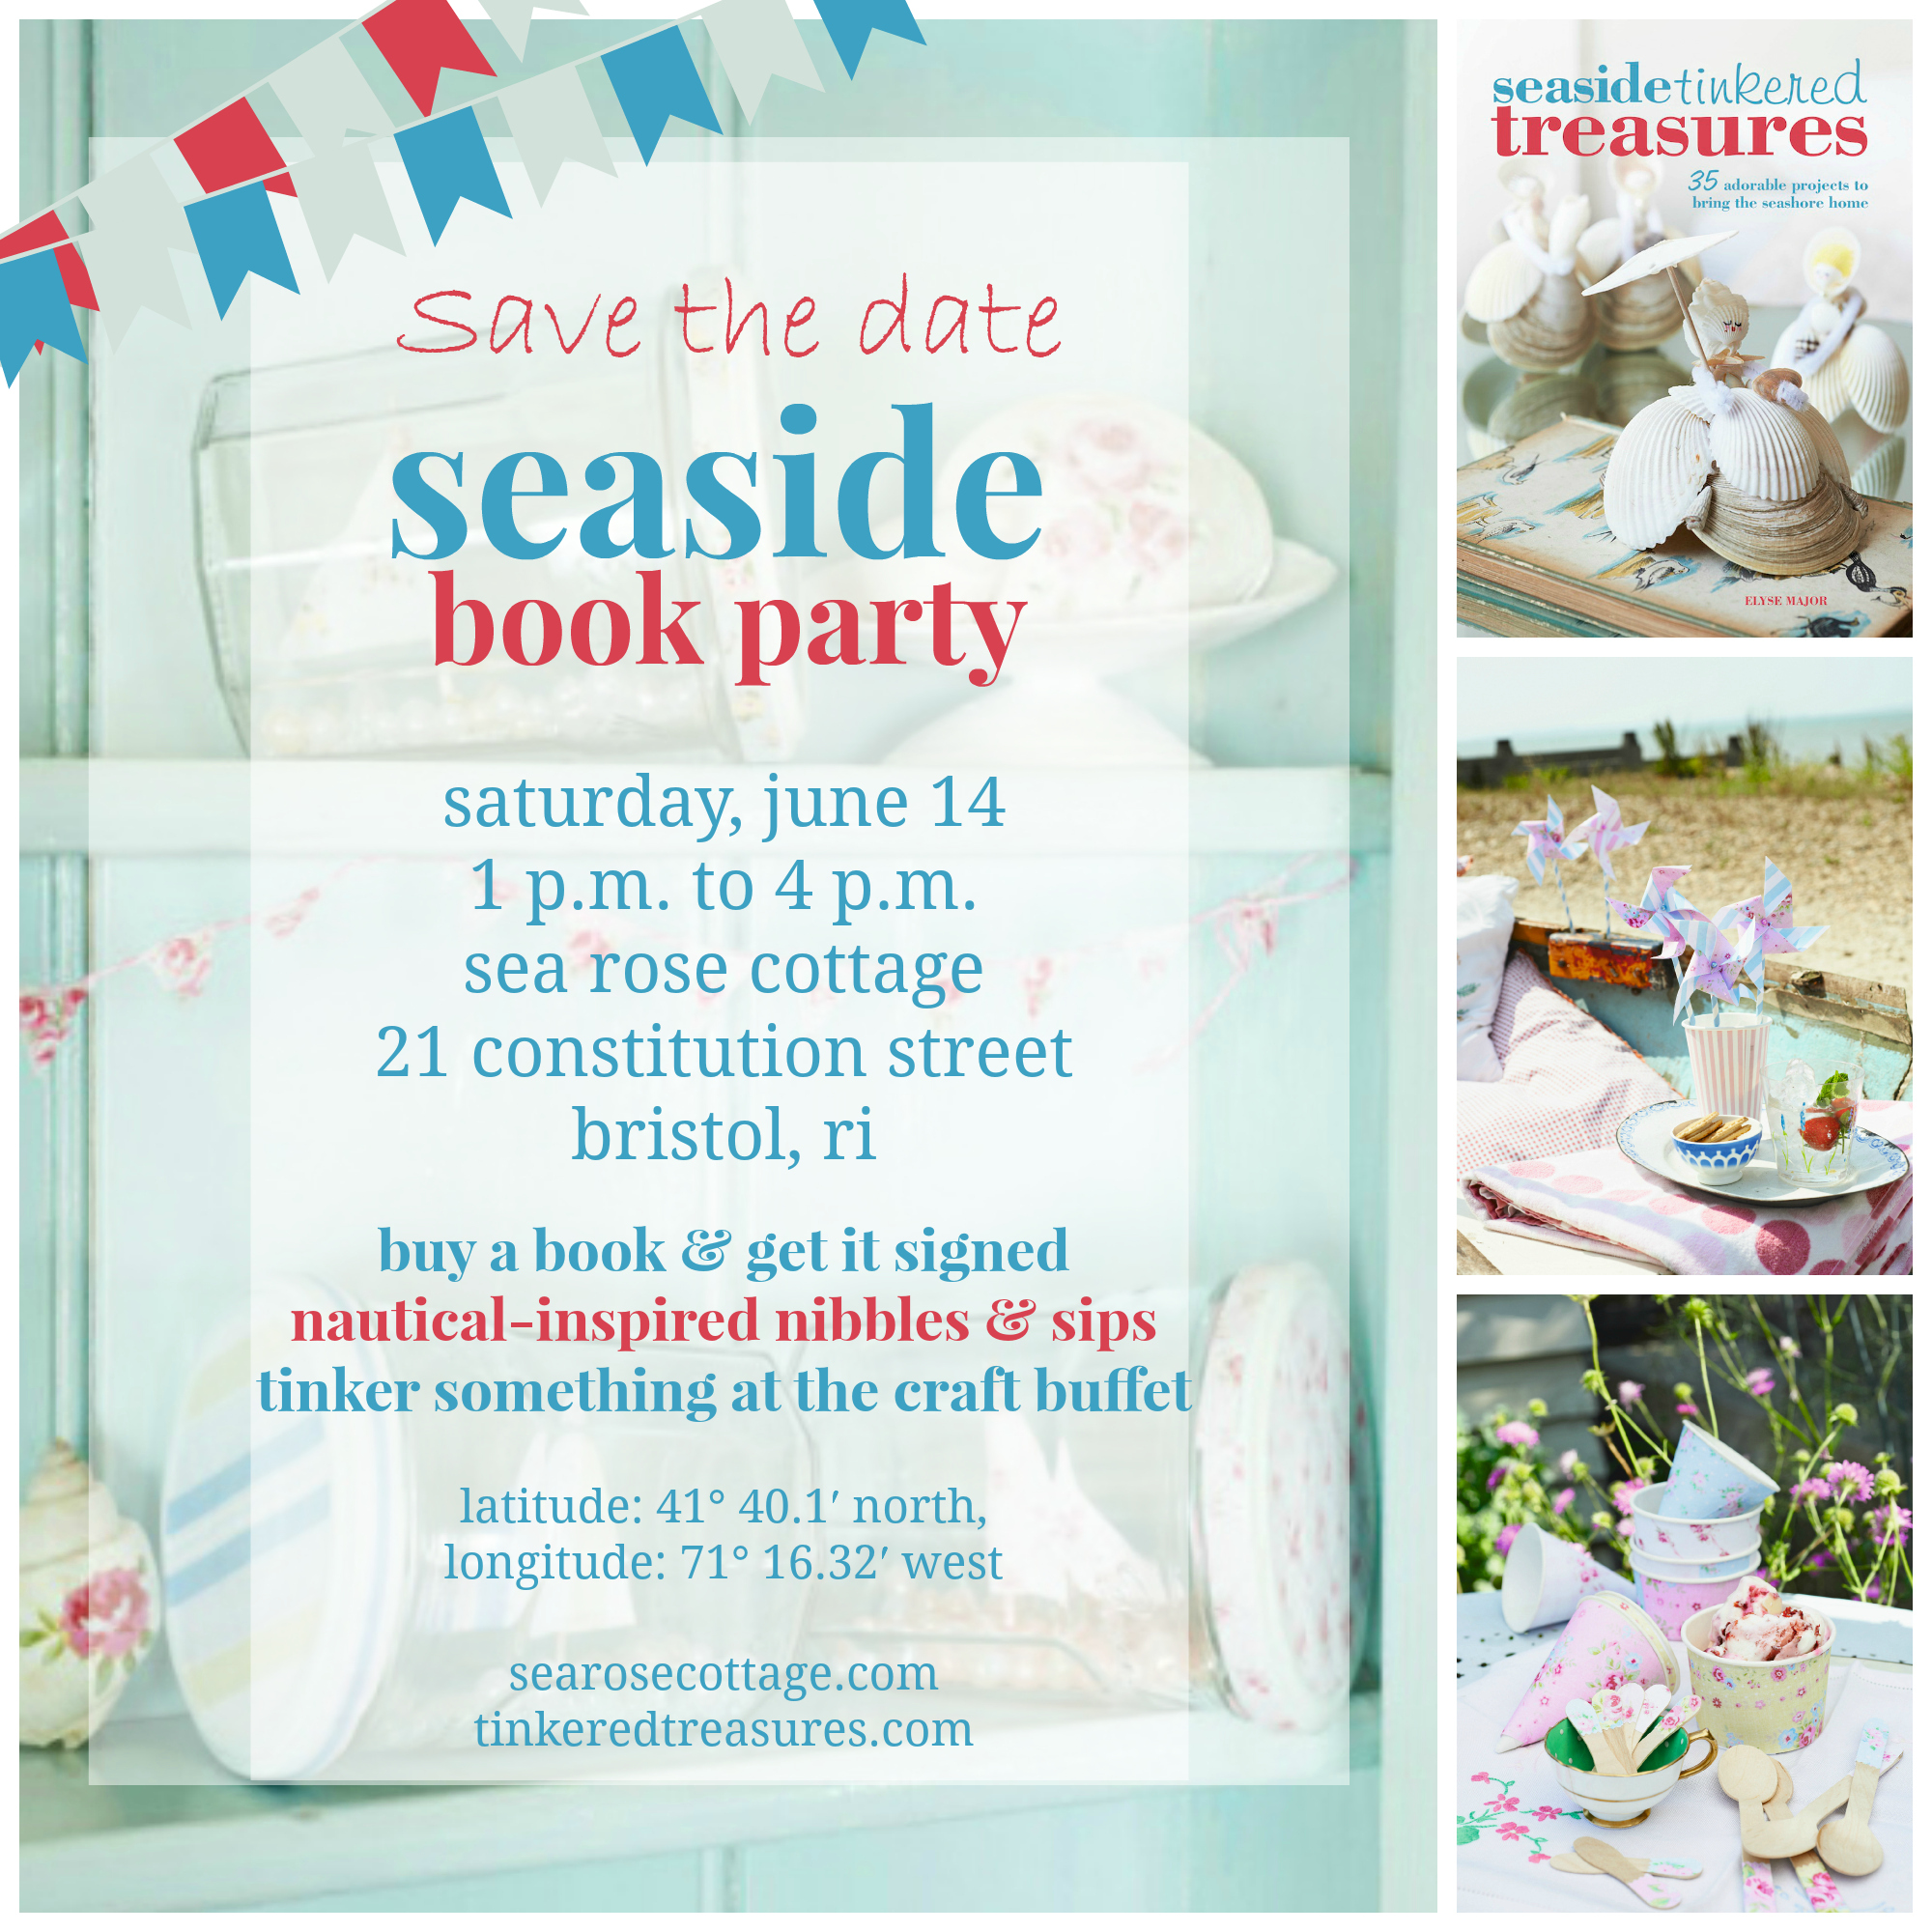 SEASIDEBOOKPARTY1